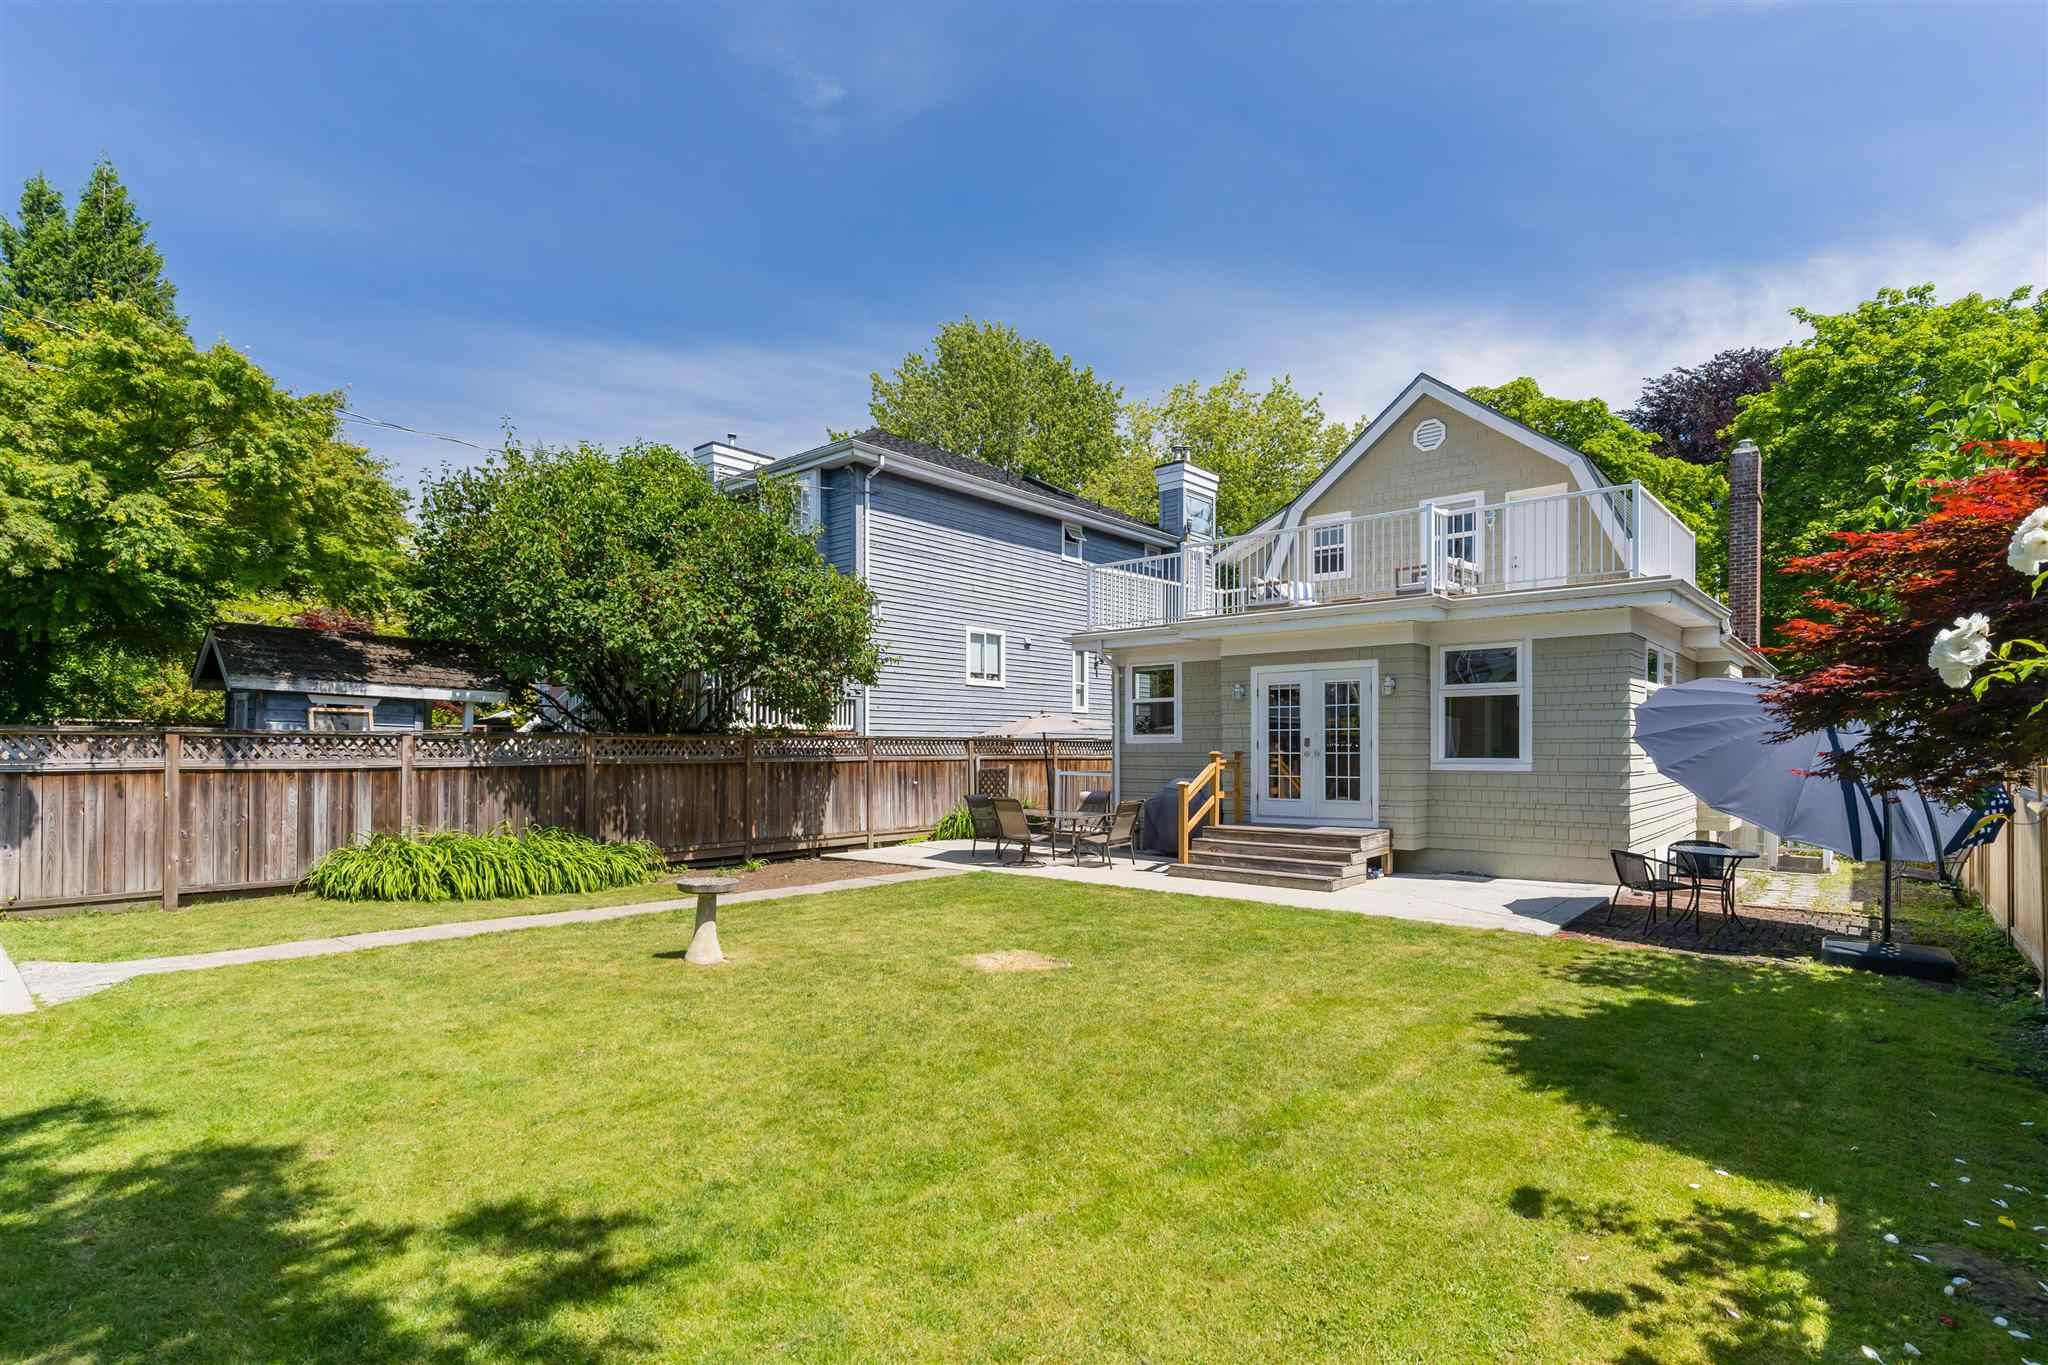 Photo 33: Photos: 412 FIFTH STREET in New Westminster: Queens Park House for sale : MLS®# R2594885